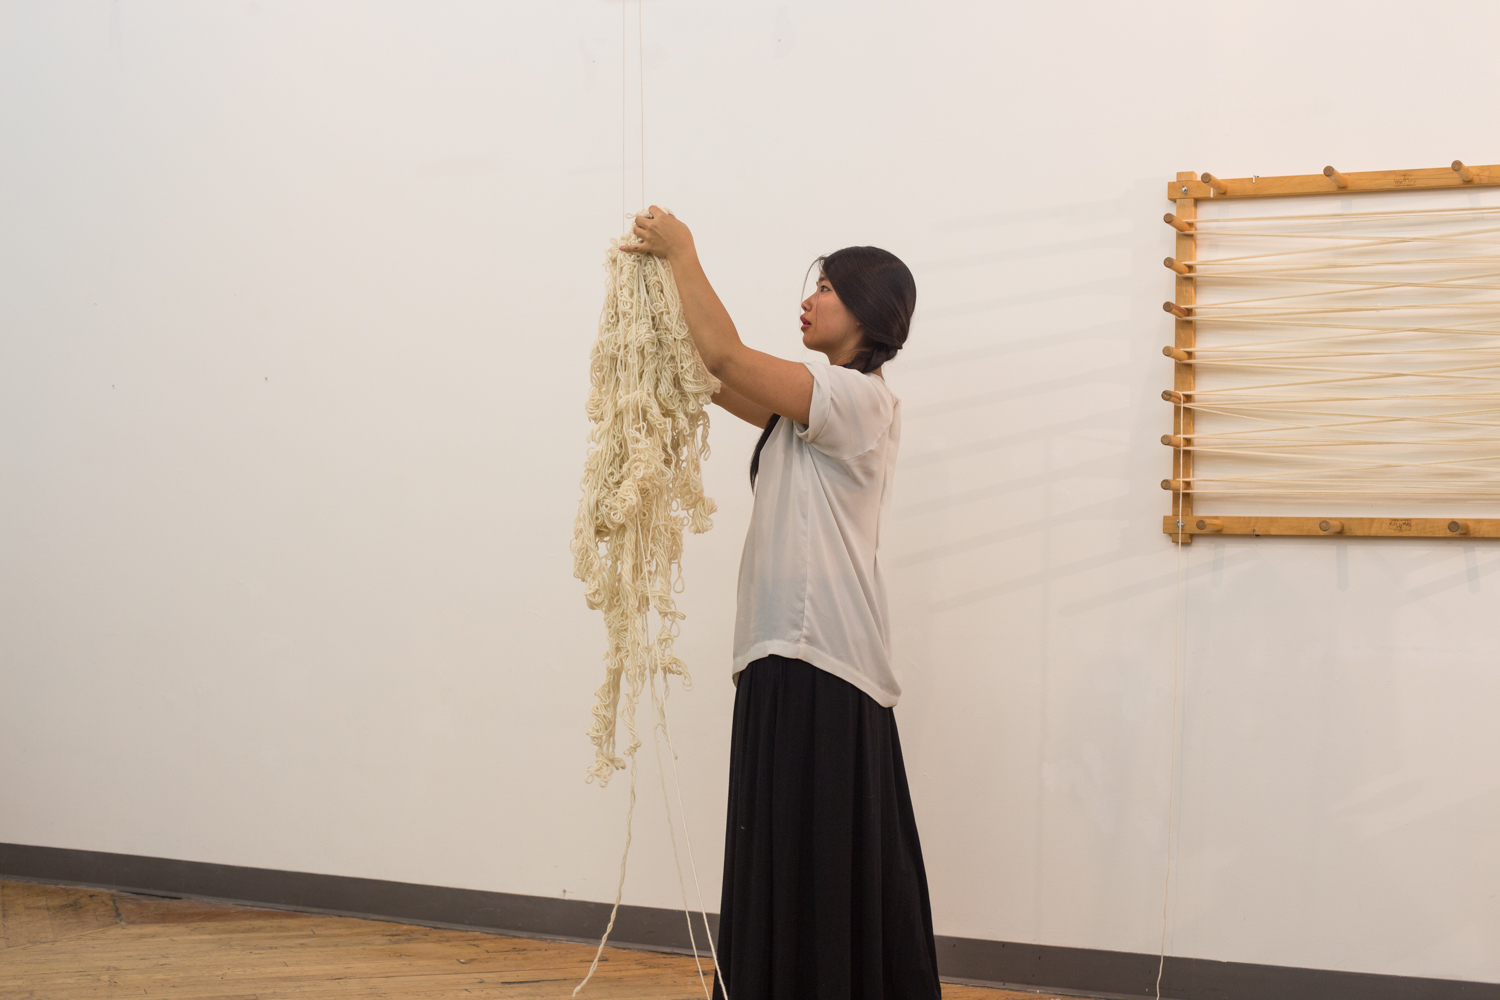 The artist lifts her hand to untangle a knot at the top of the suspended yarn, which is the same height as she is.